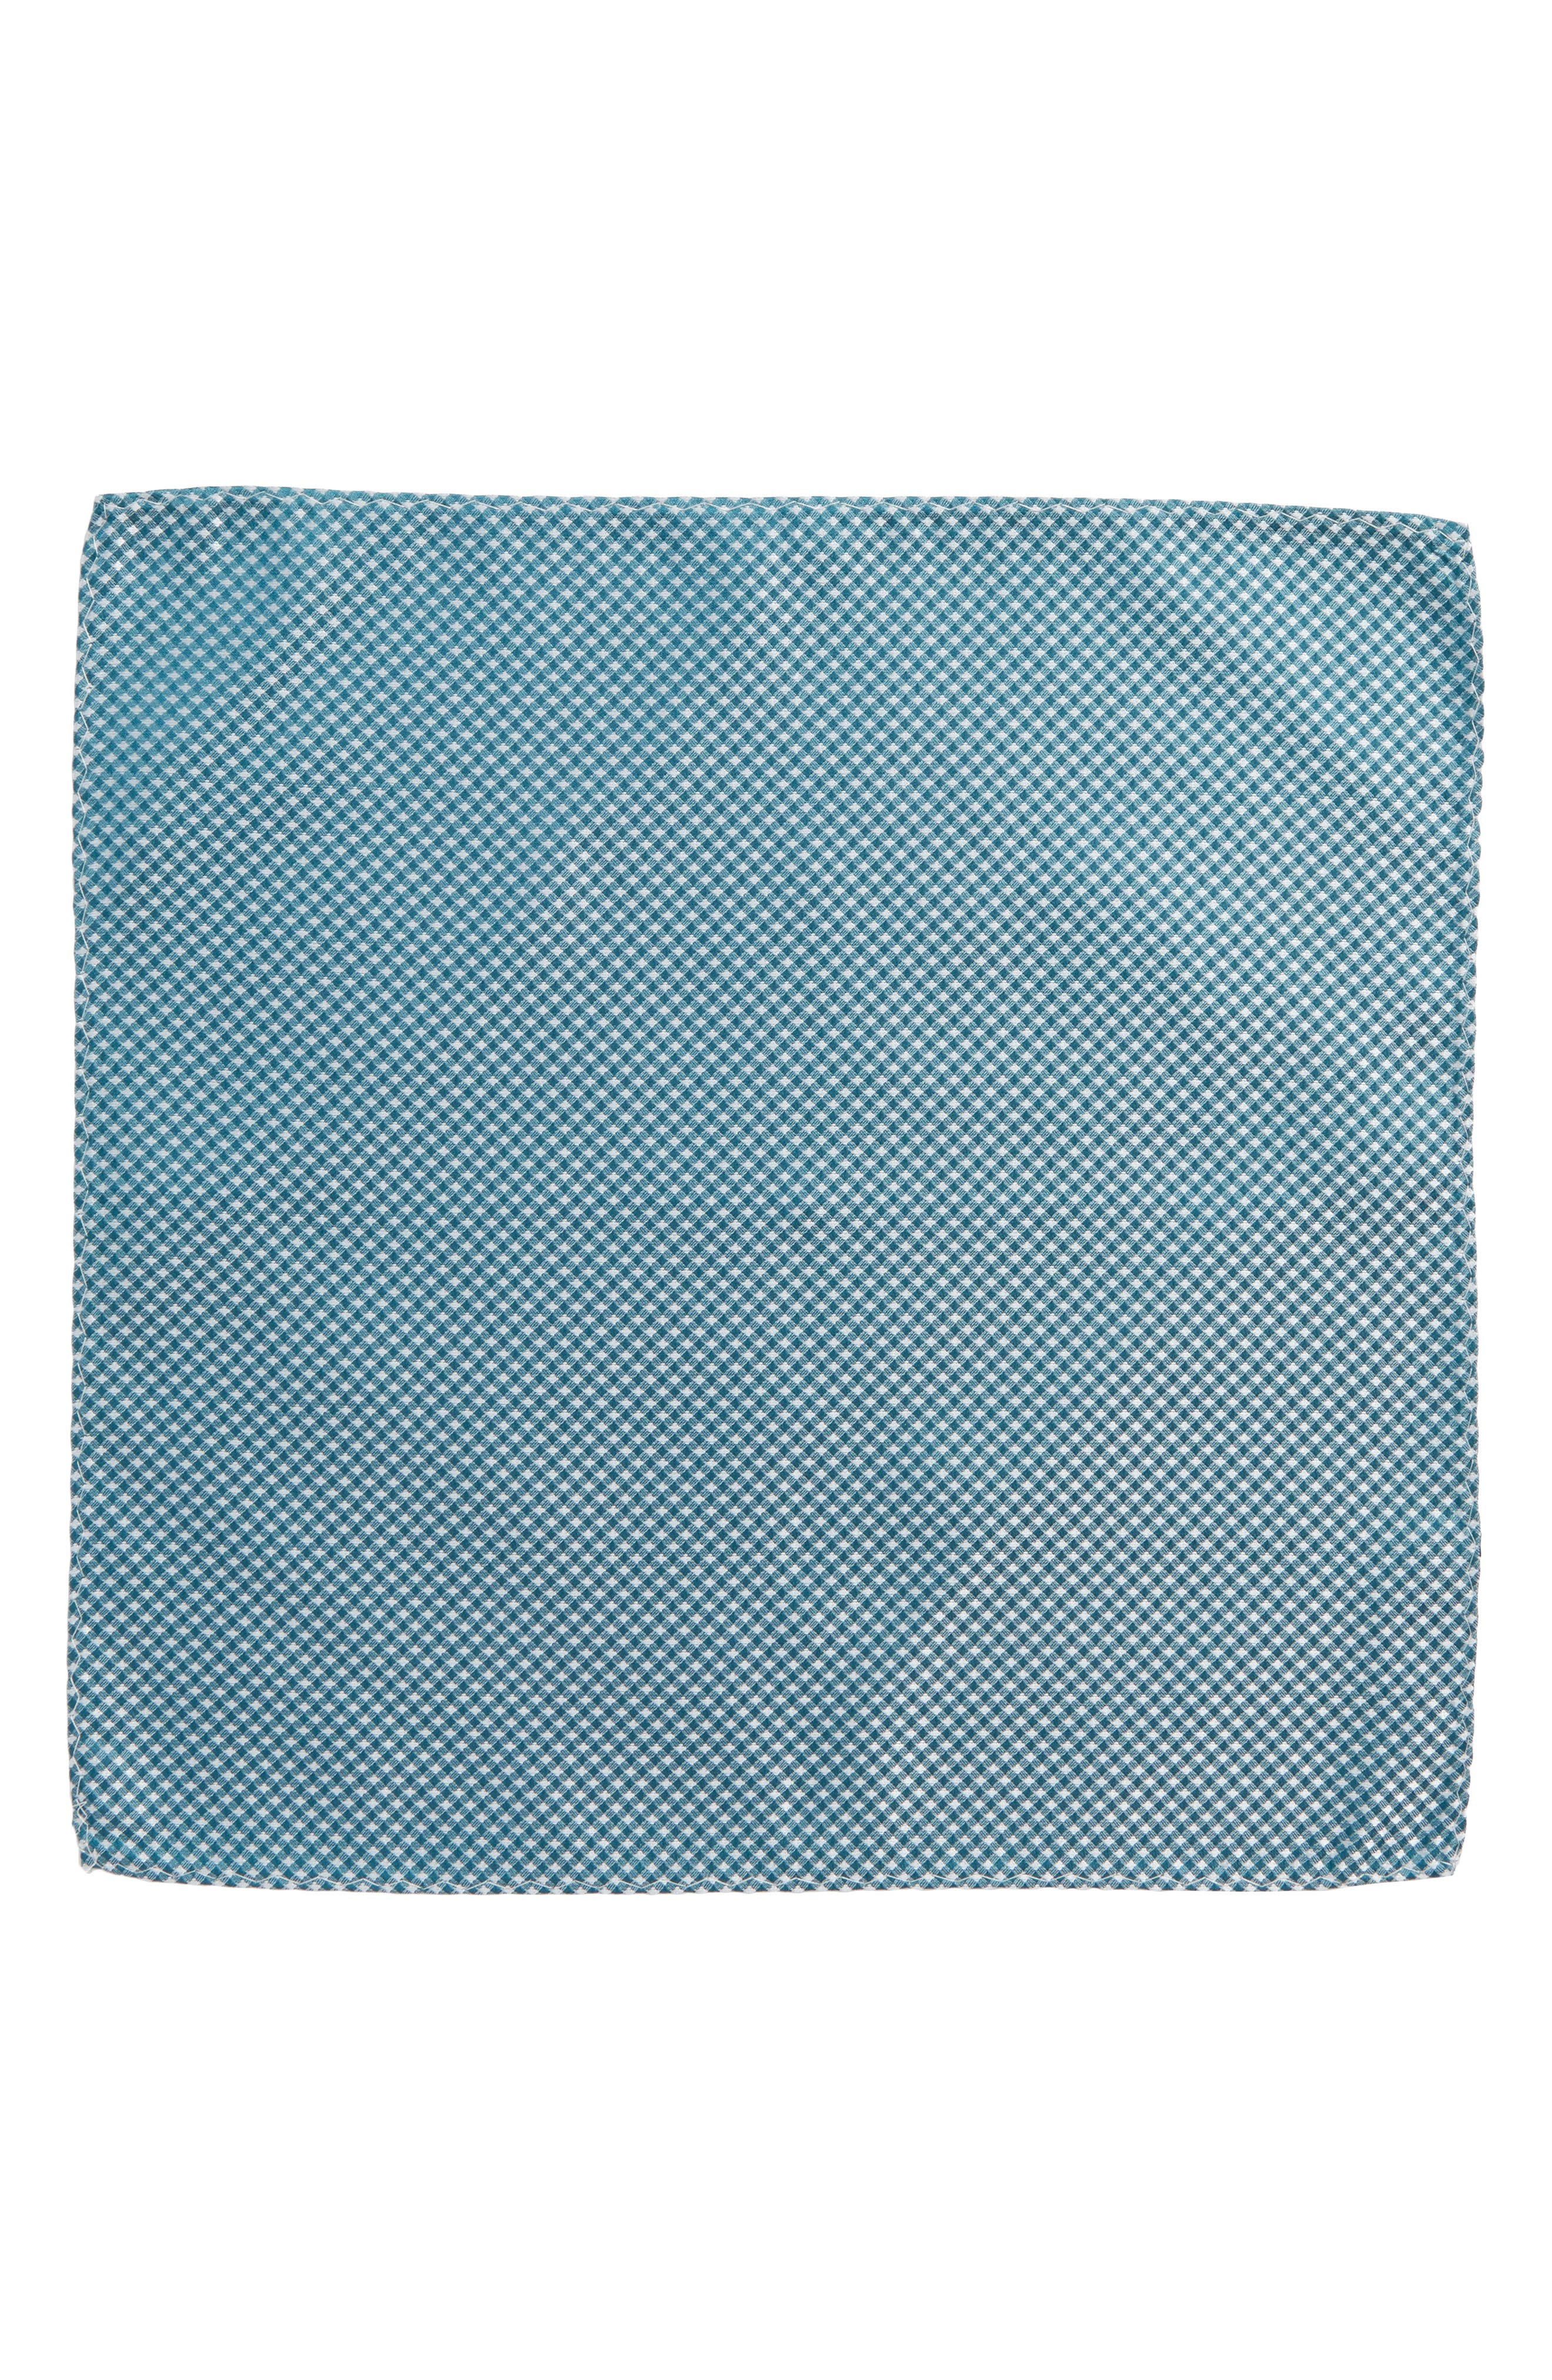 Check Silk Pocket Square,                             Alternate thumbnail 3, color,                             Teal